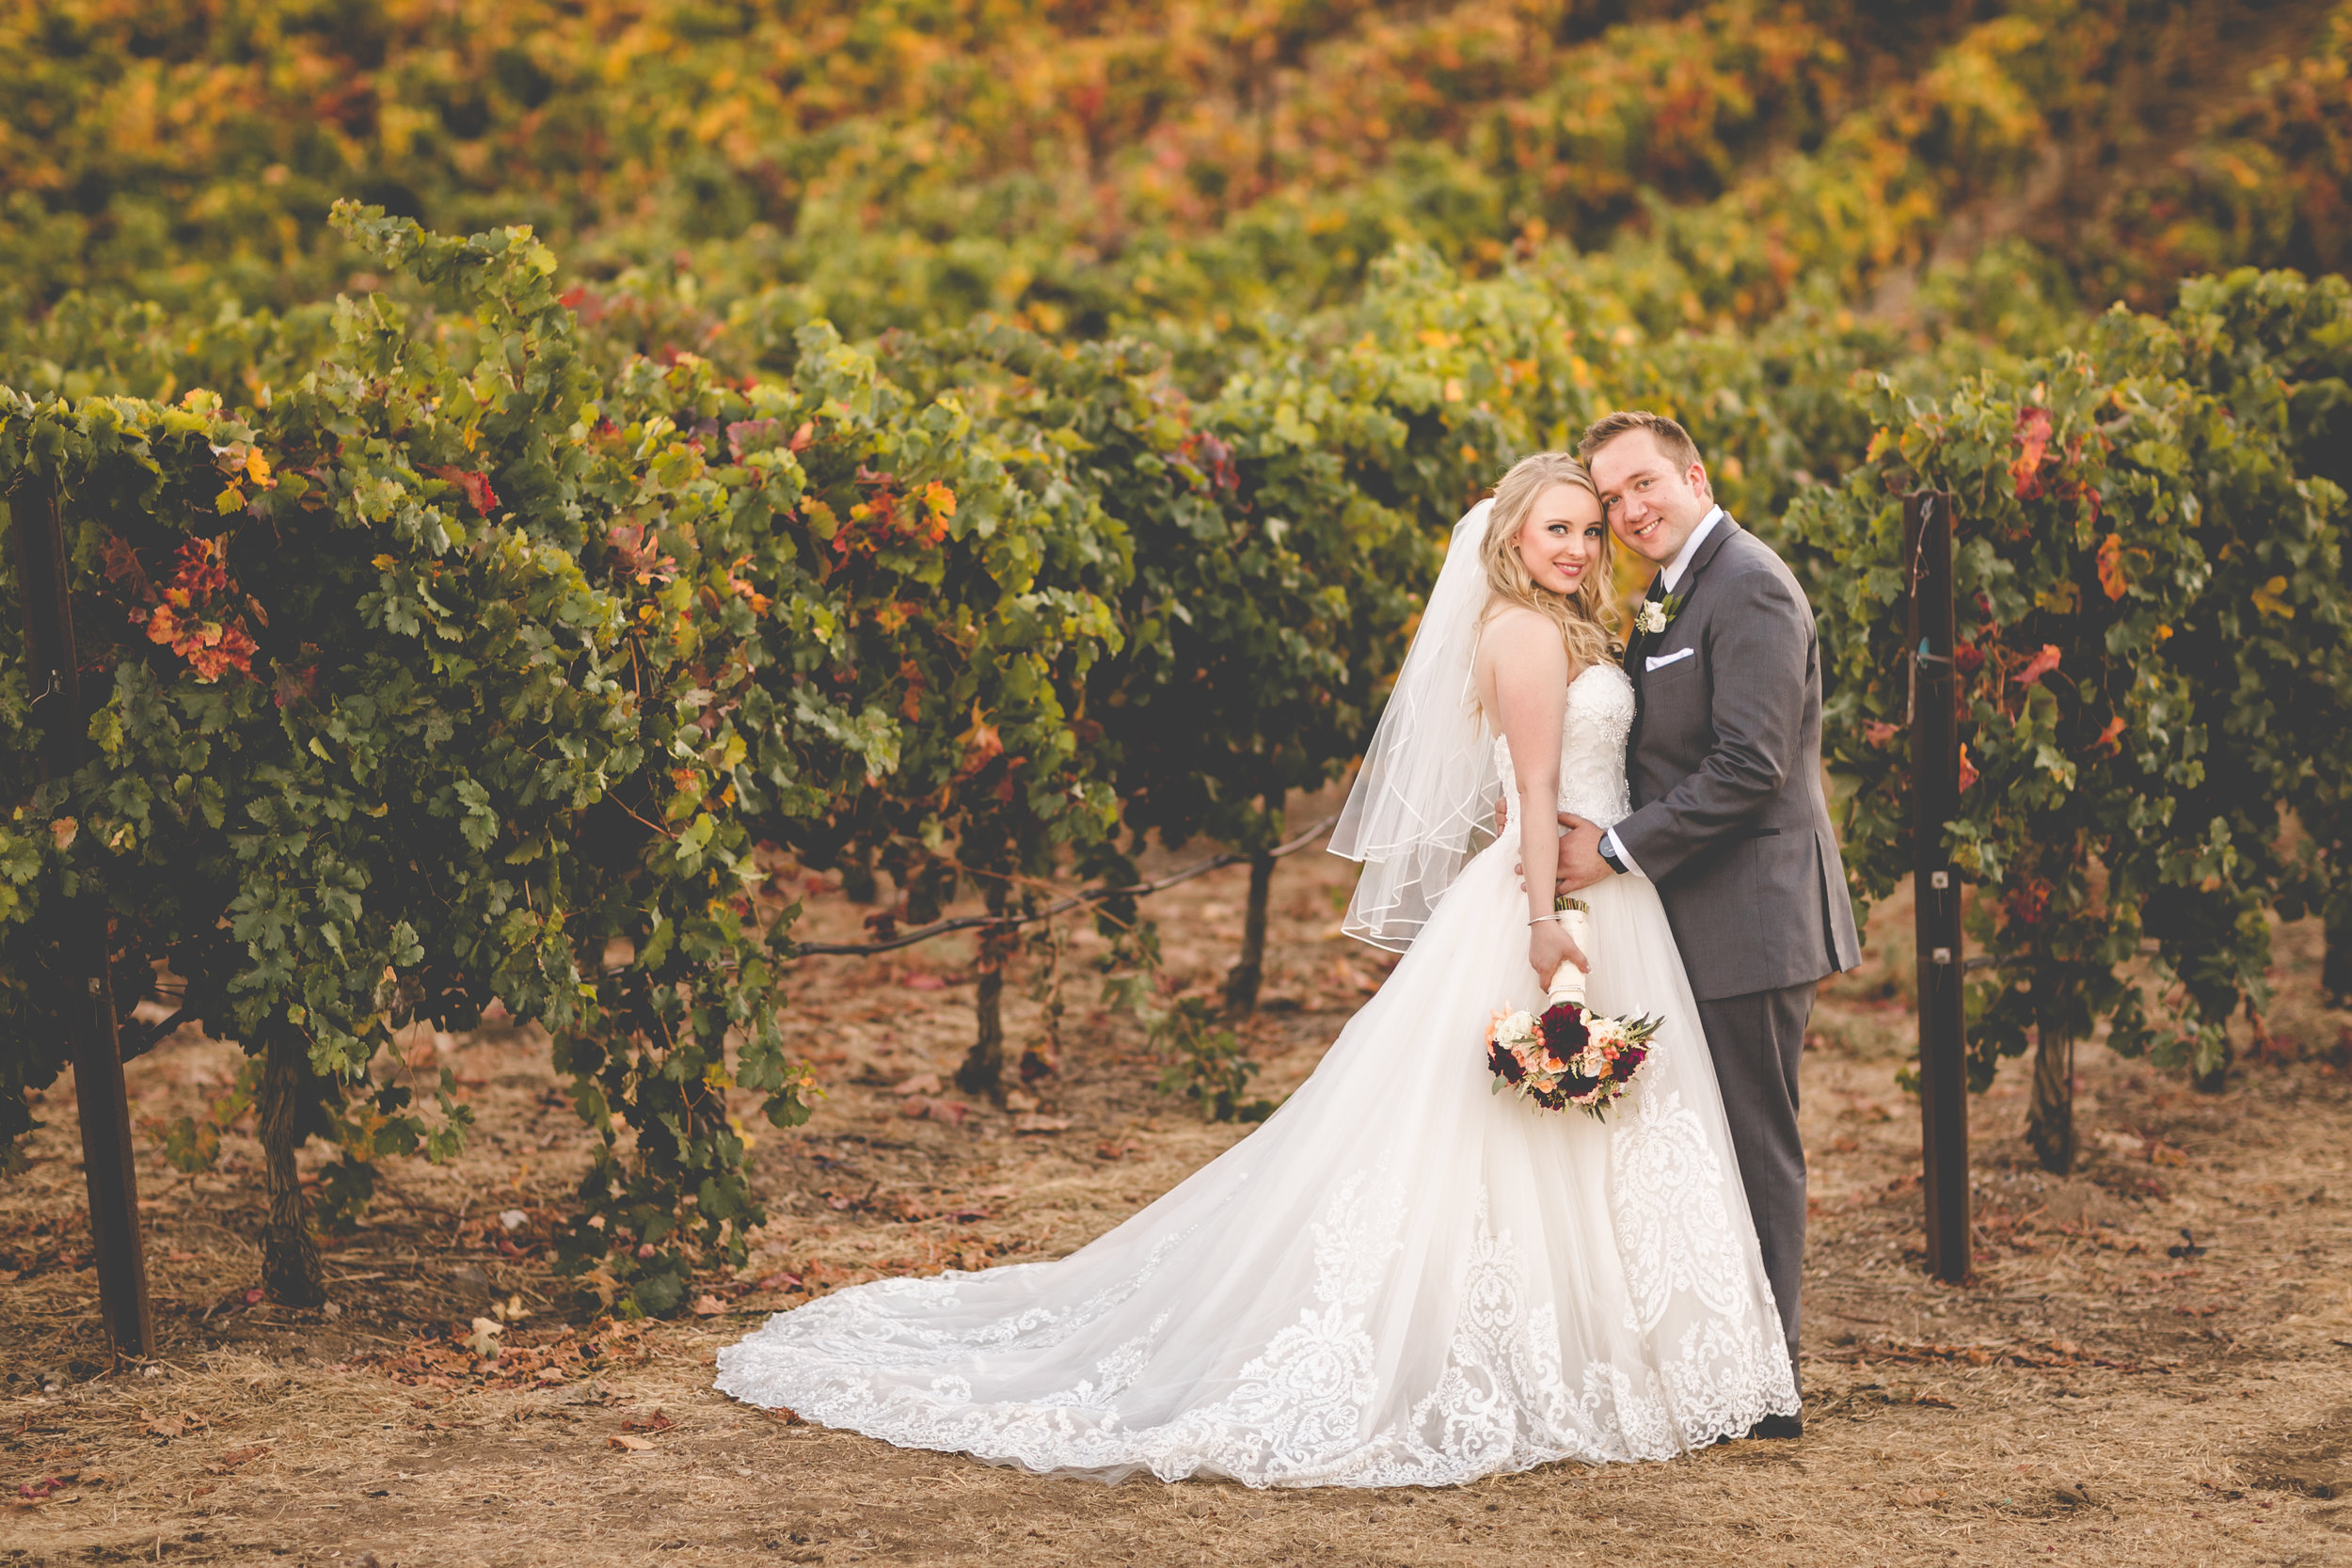 Petty [Newlies]-137.jpg